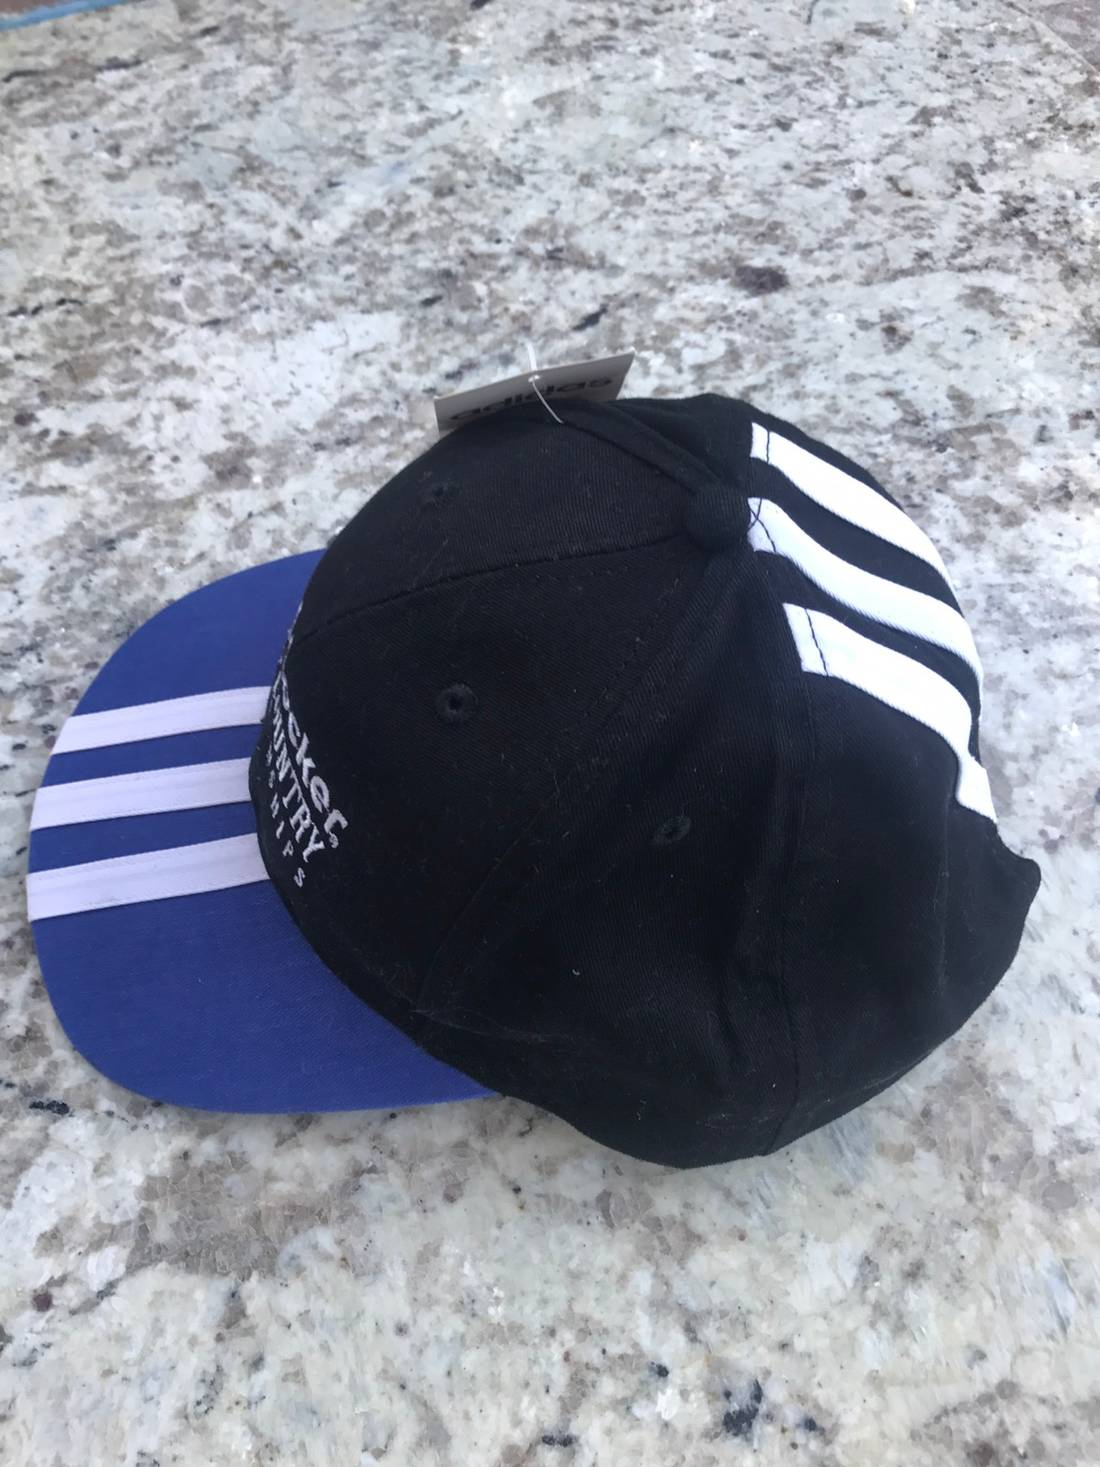 bf729e287c9 detailed look 5bf19 1ff81 adidas vintage 80s hat size one size ...